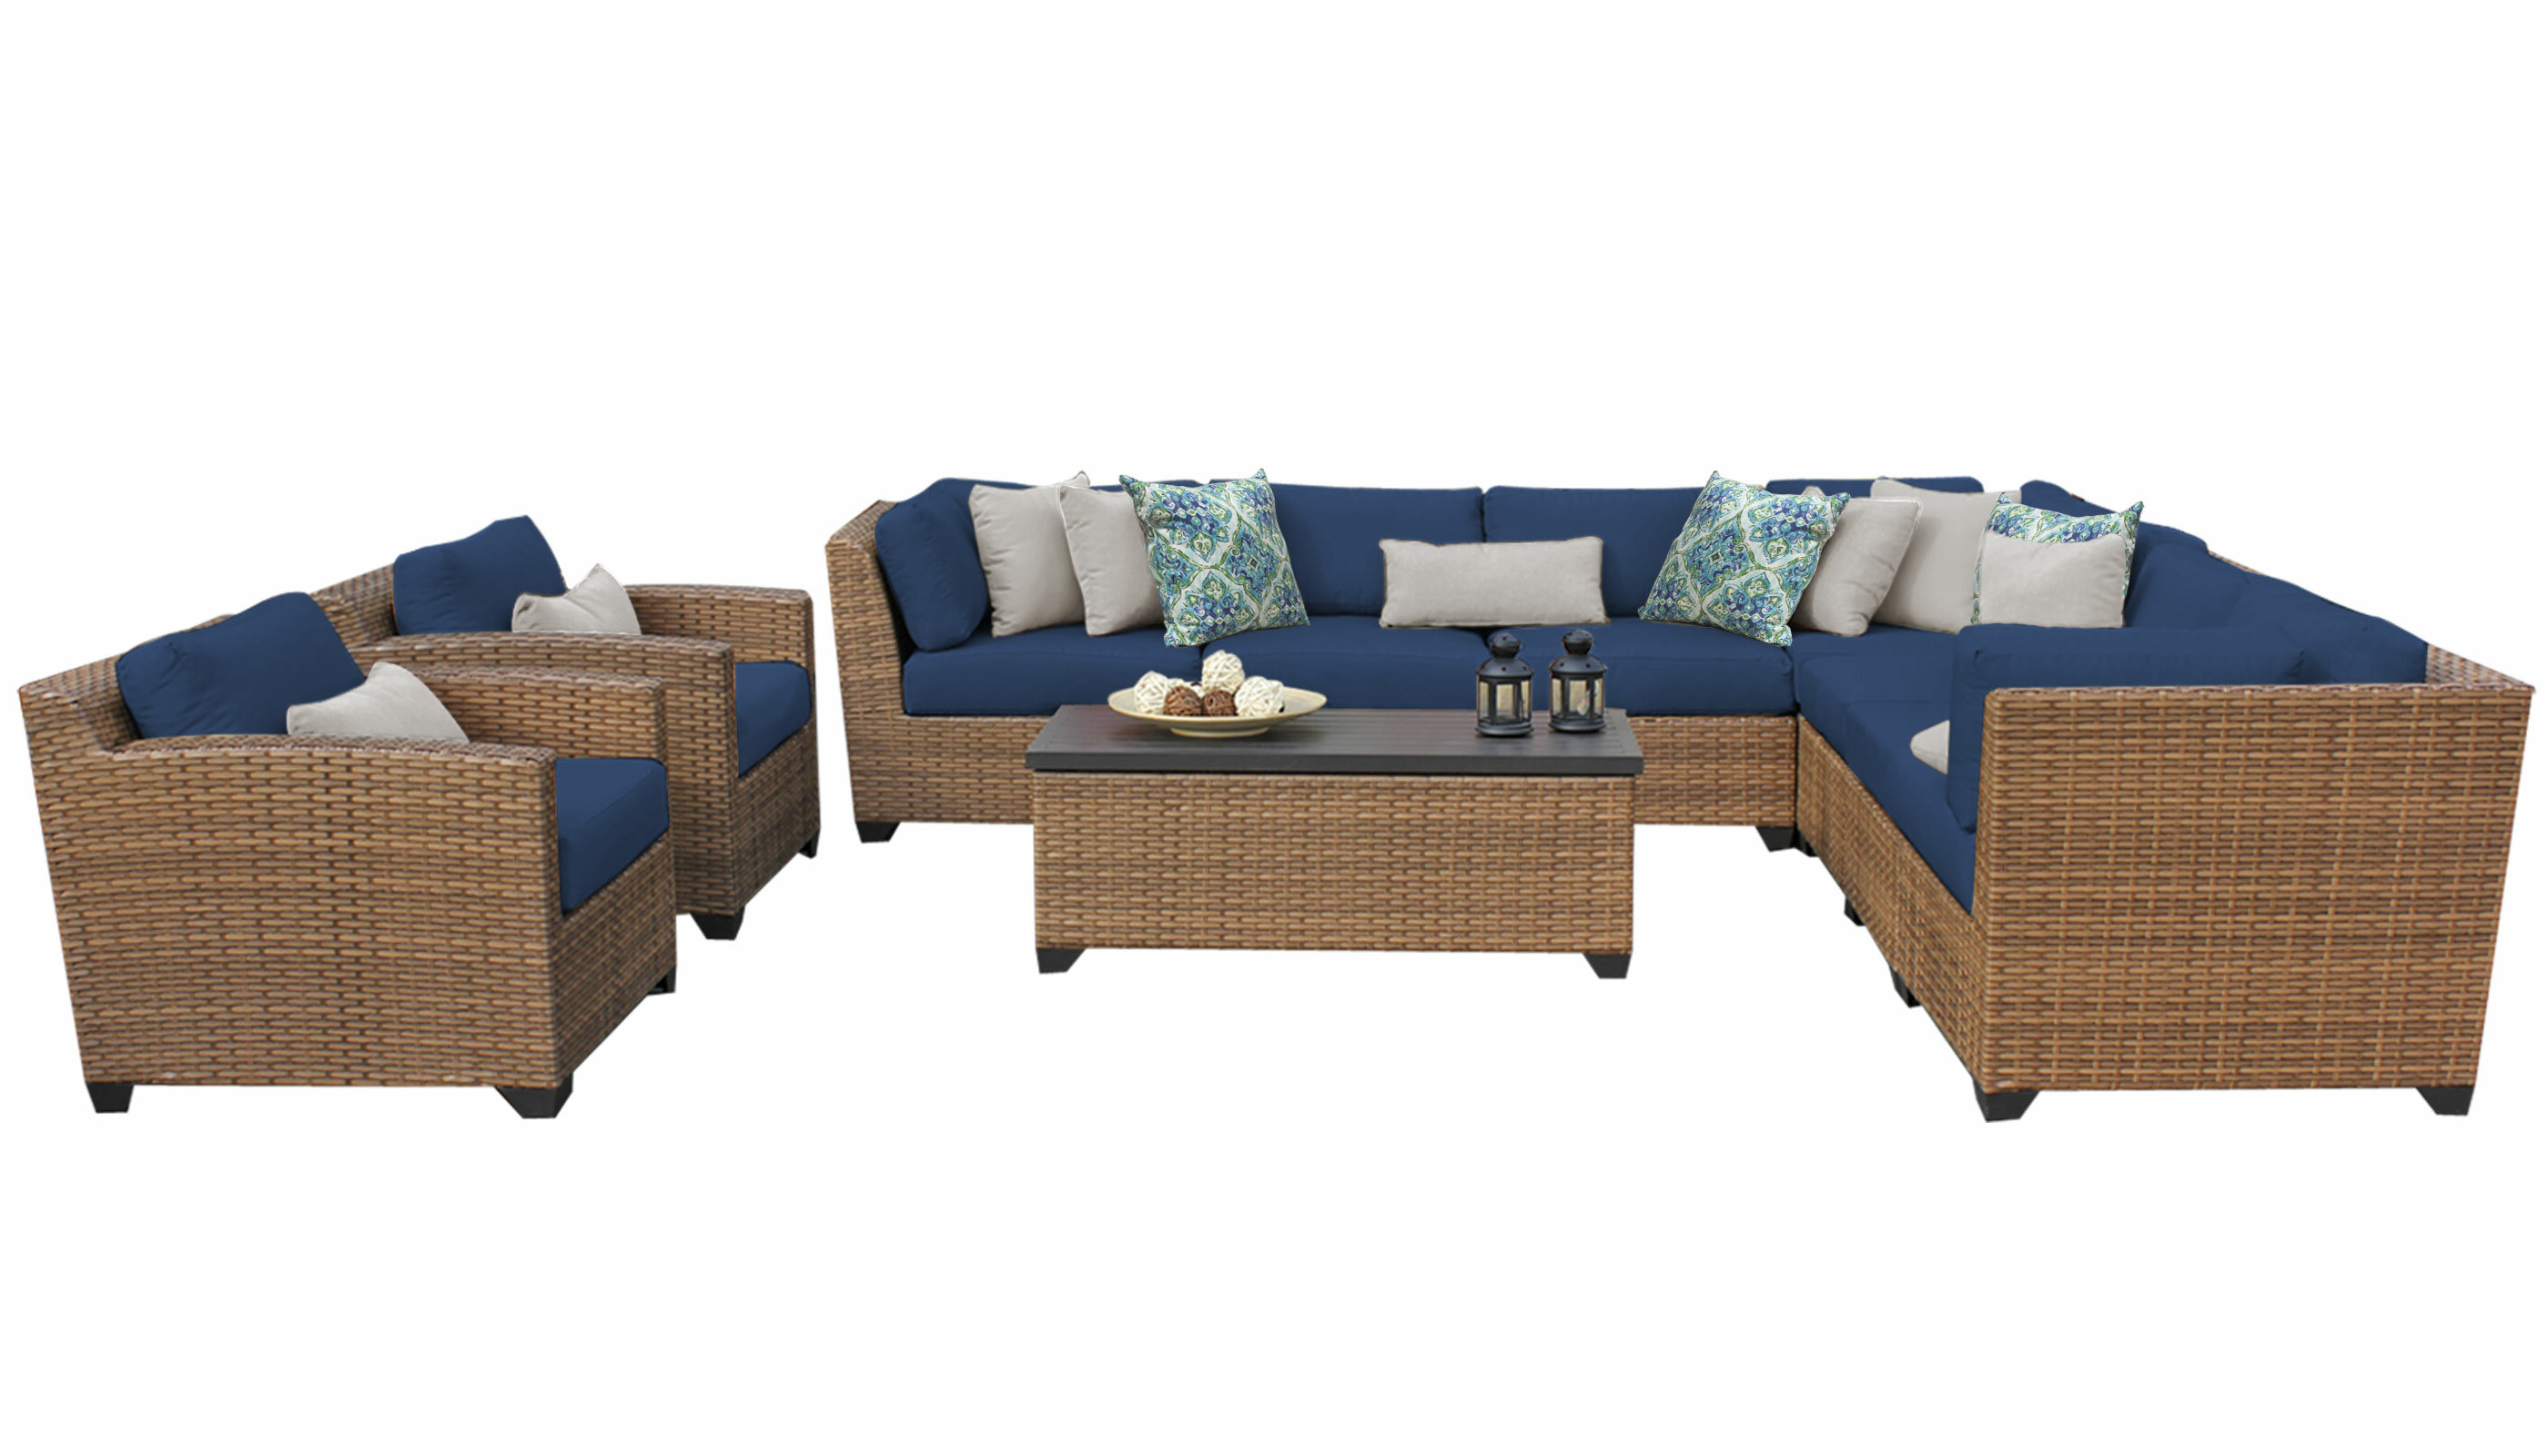 Well Known Waterbury 10 Piece Sectional Seating Group With Cushions Throughout Waterbury Curved Armless Sofa With Cushions (View 10 of 20)